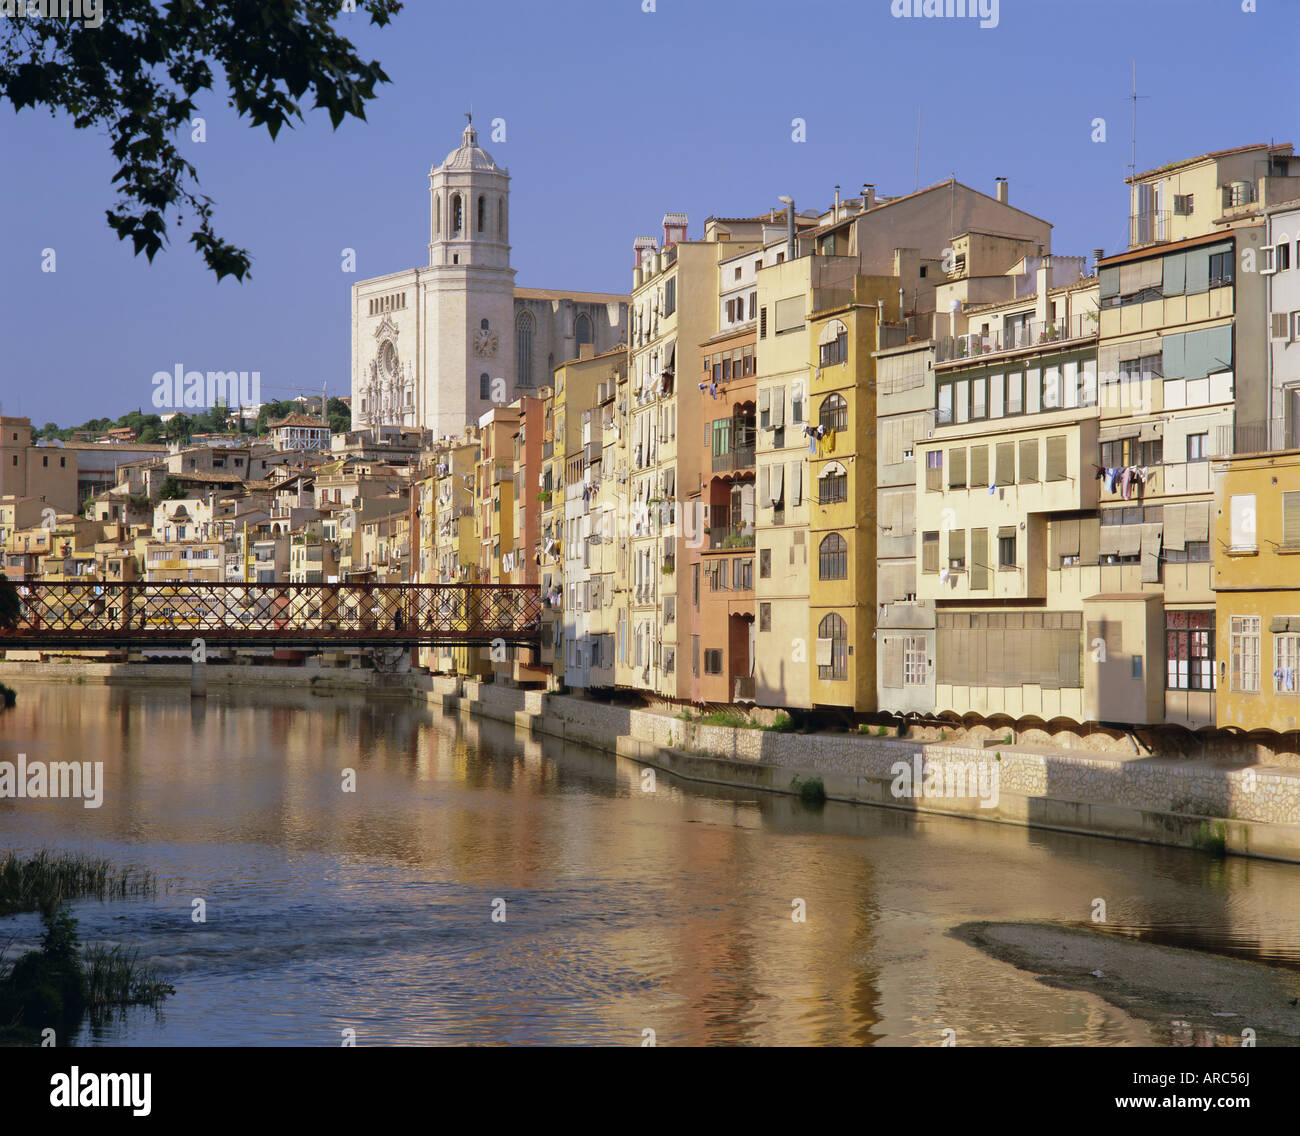 Medieval houses on the Onyar River, Girona, Catalunya (Catalonia) (Cataluna), Spain, Europe - Stock Image